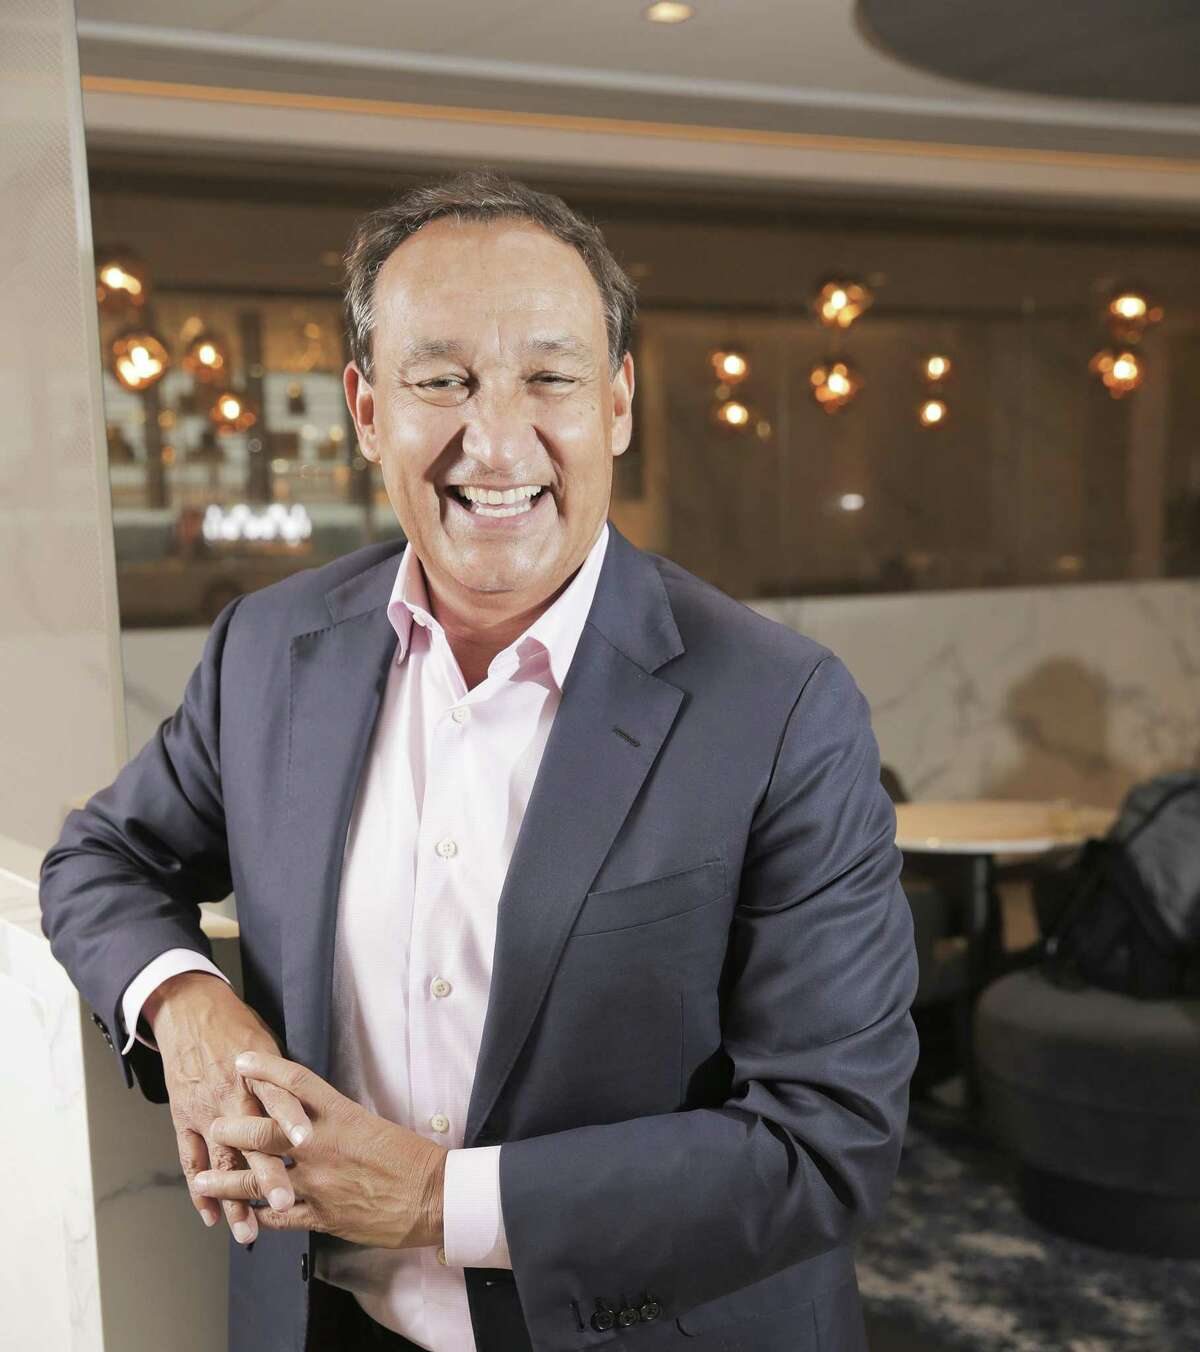 Oscar Munoz, CEO of United Airlines, at Bush Intercontinental Airport on Wednesday, Oct. 24, 2018 in Houston.